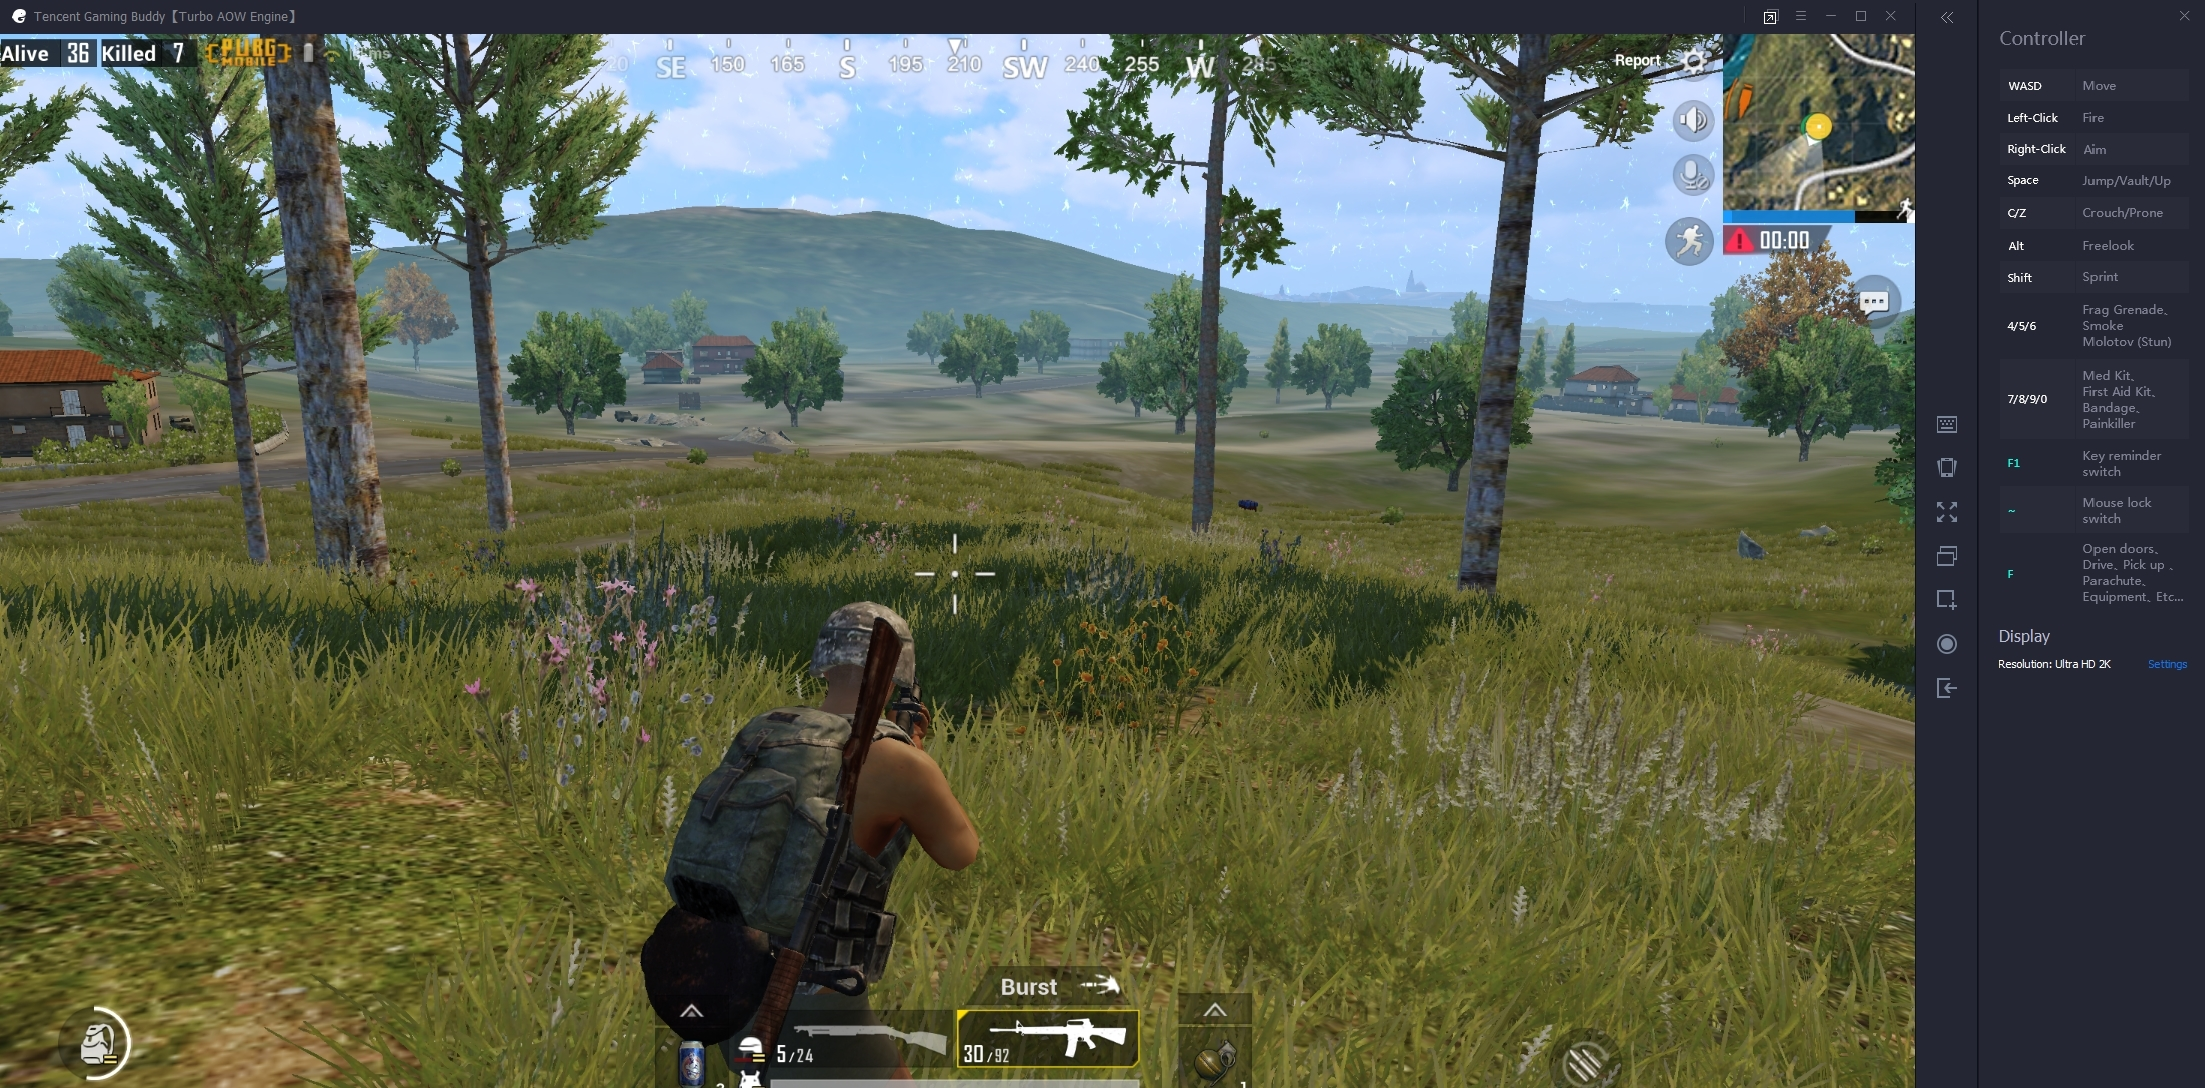 esp hack pubg on phone